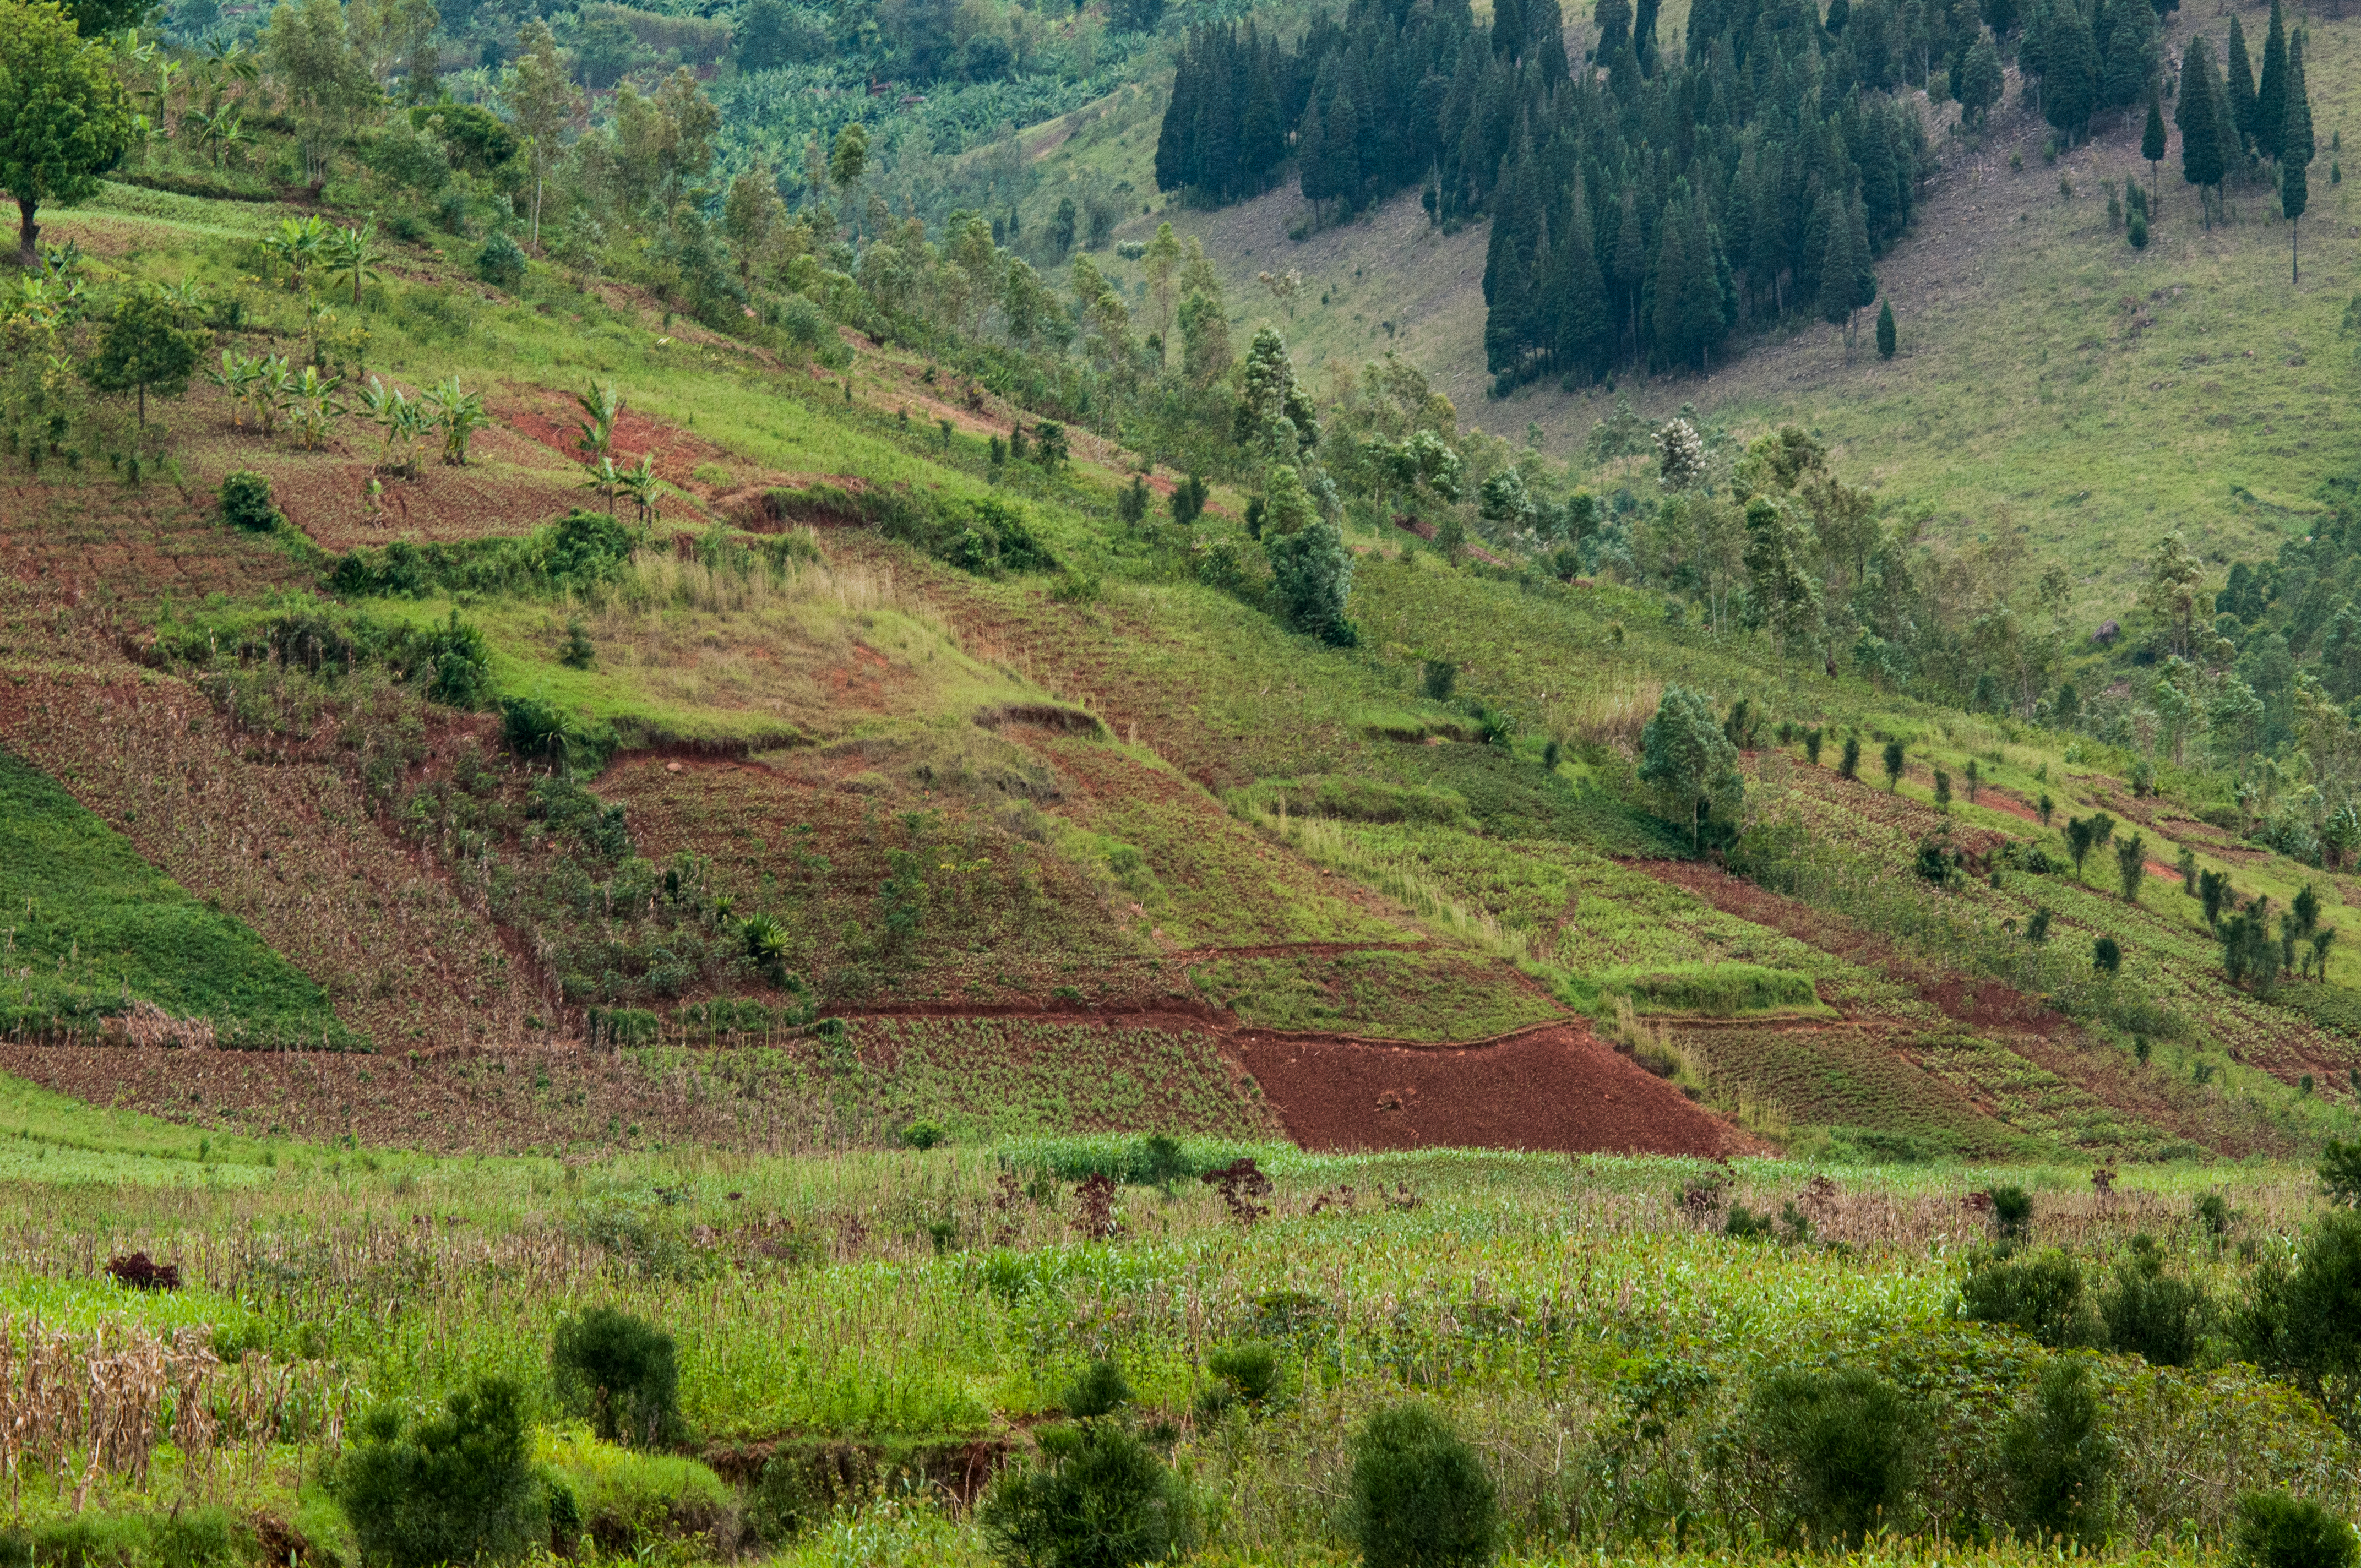 The AgroForest is an ideal combination of agriculture and productive trees.